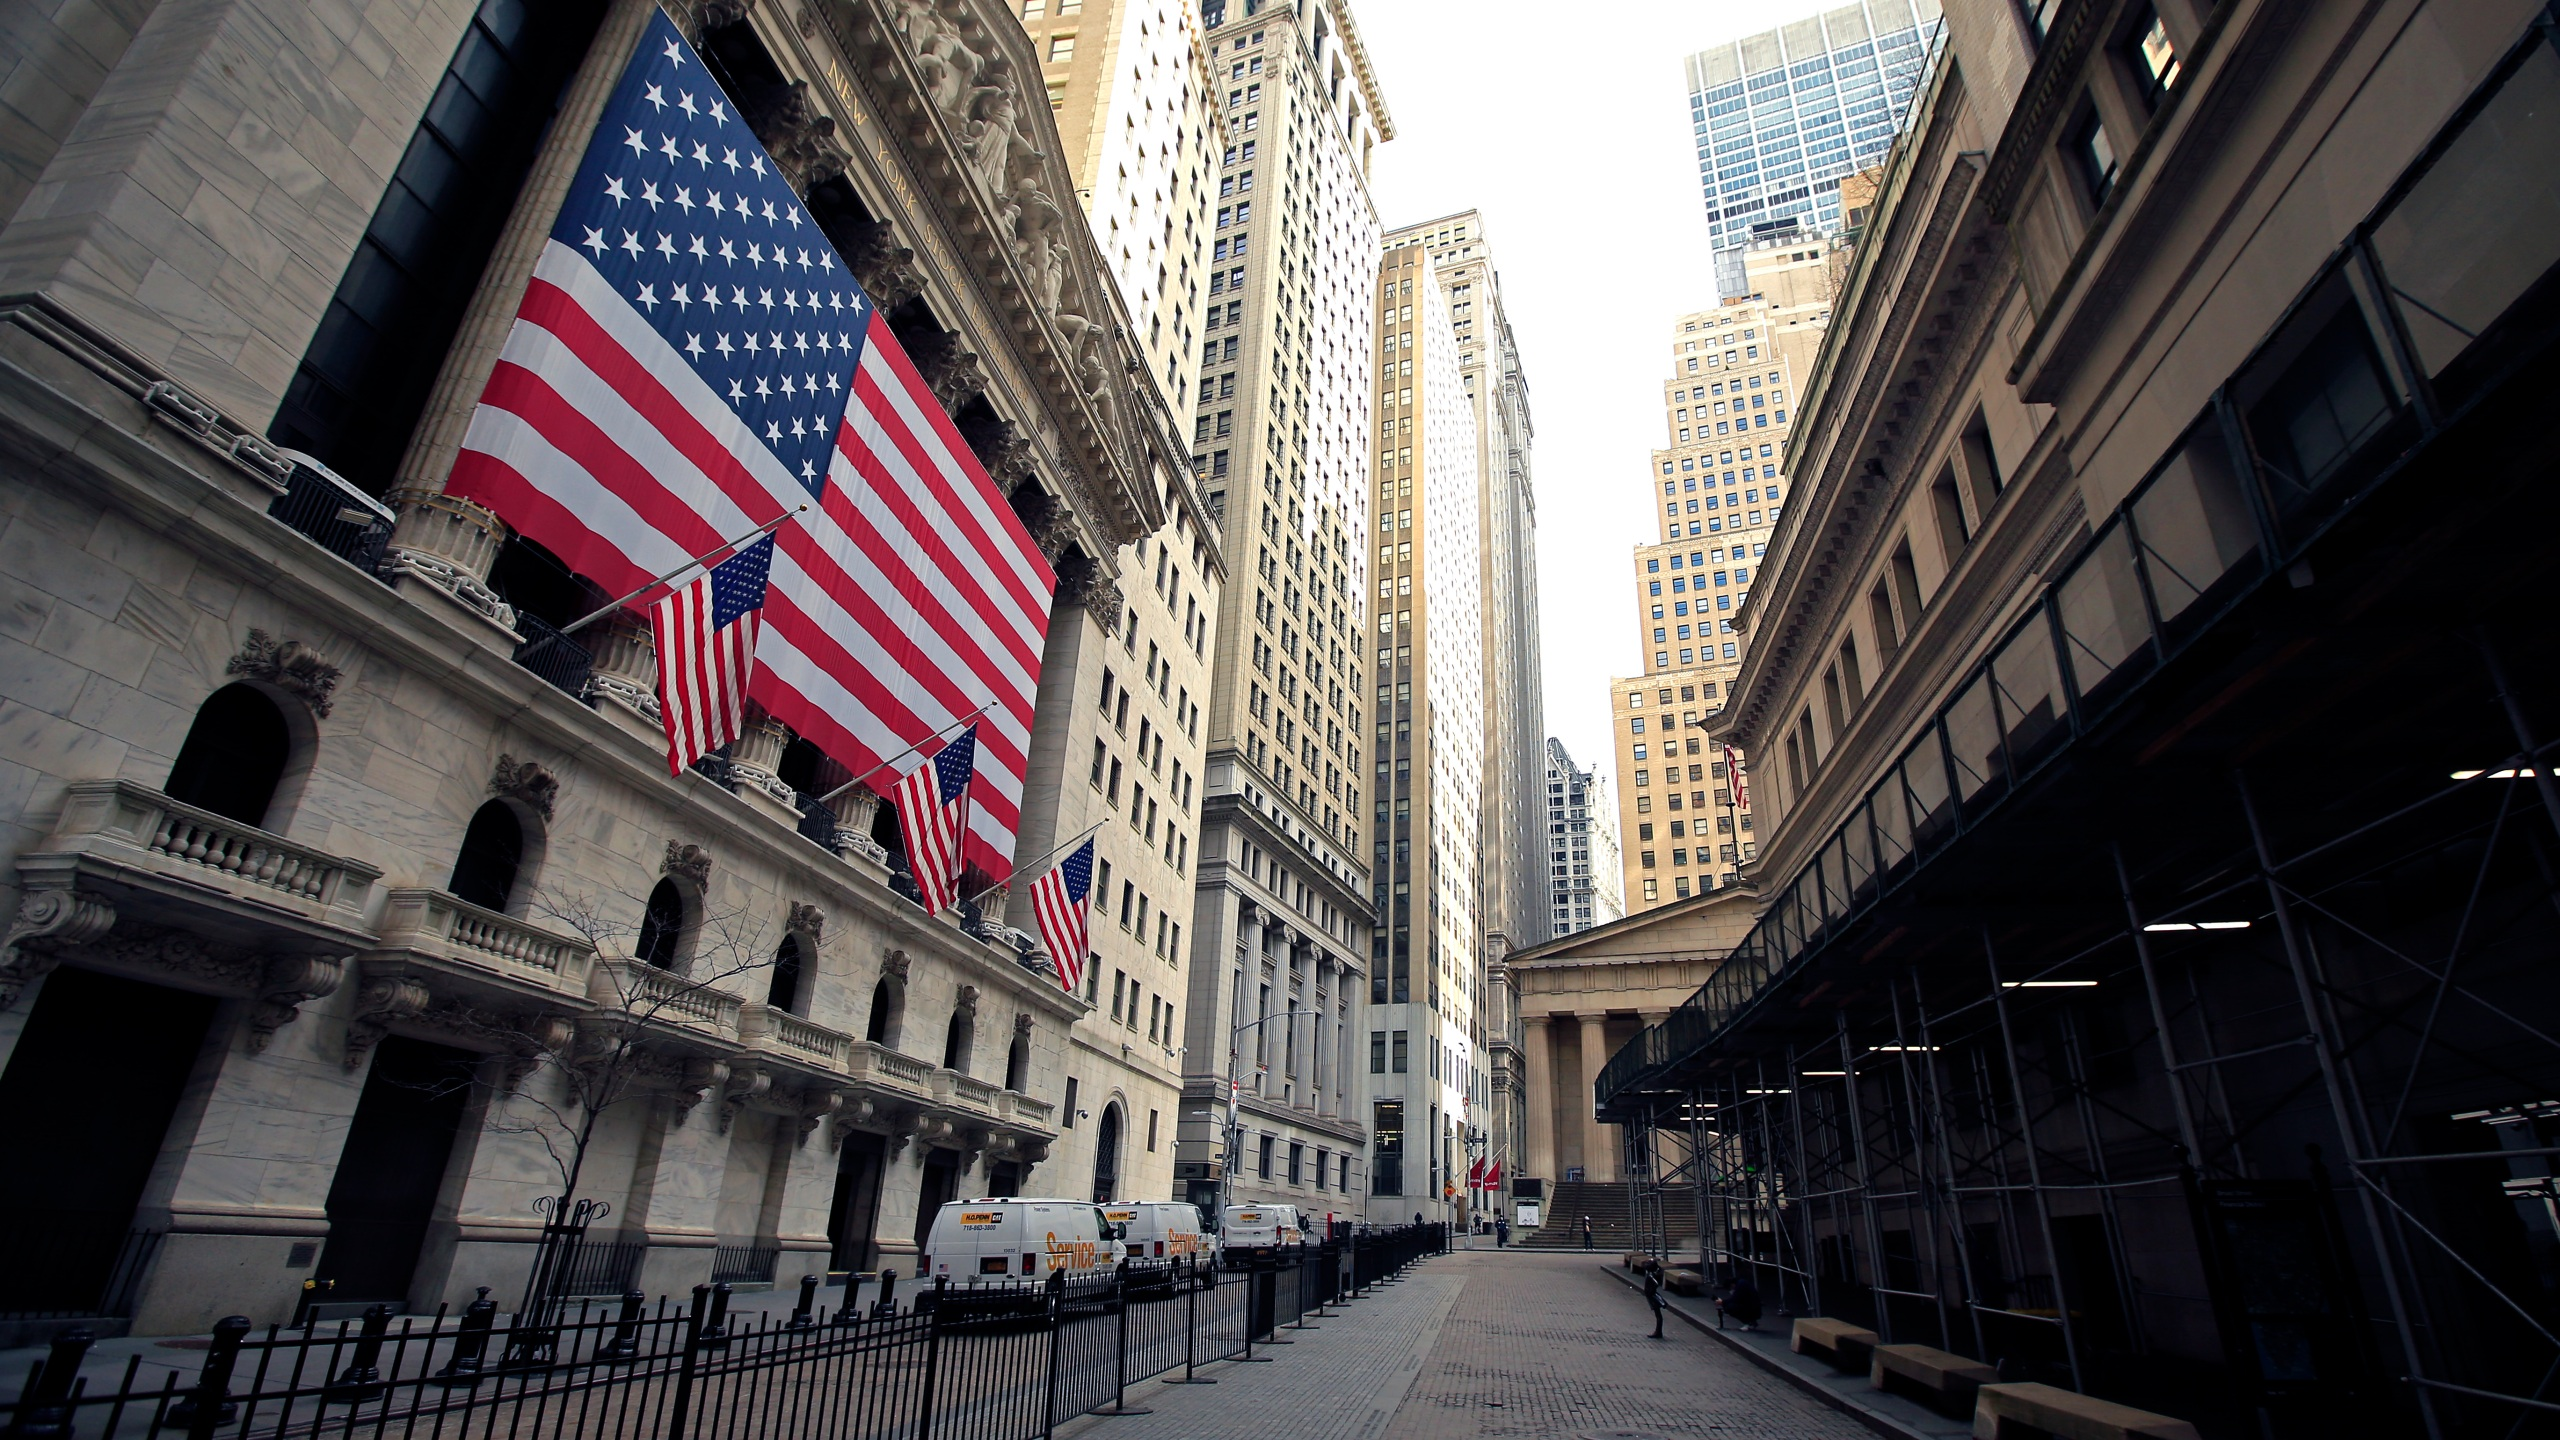 The New York Stock Exchange near Wall Street is seen on April 25, 2020 in New York City. (Justin Heiman/Getty Images)